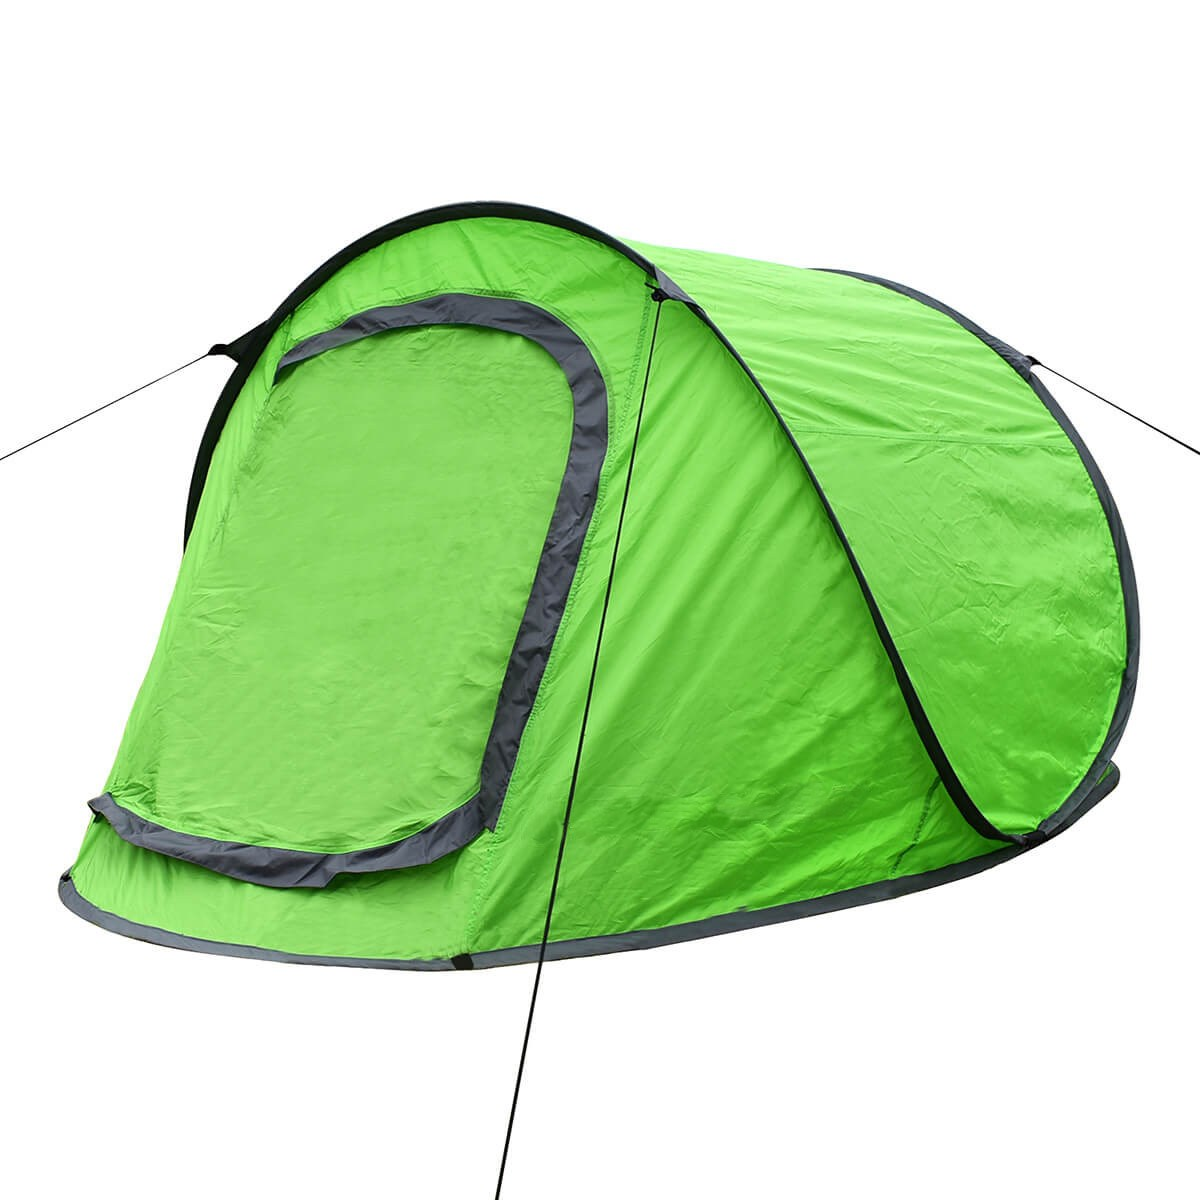 2 Man Pop Up Tent in Orange or Green Instant Tent